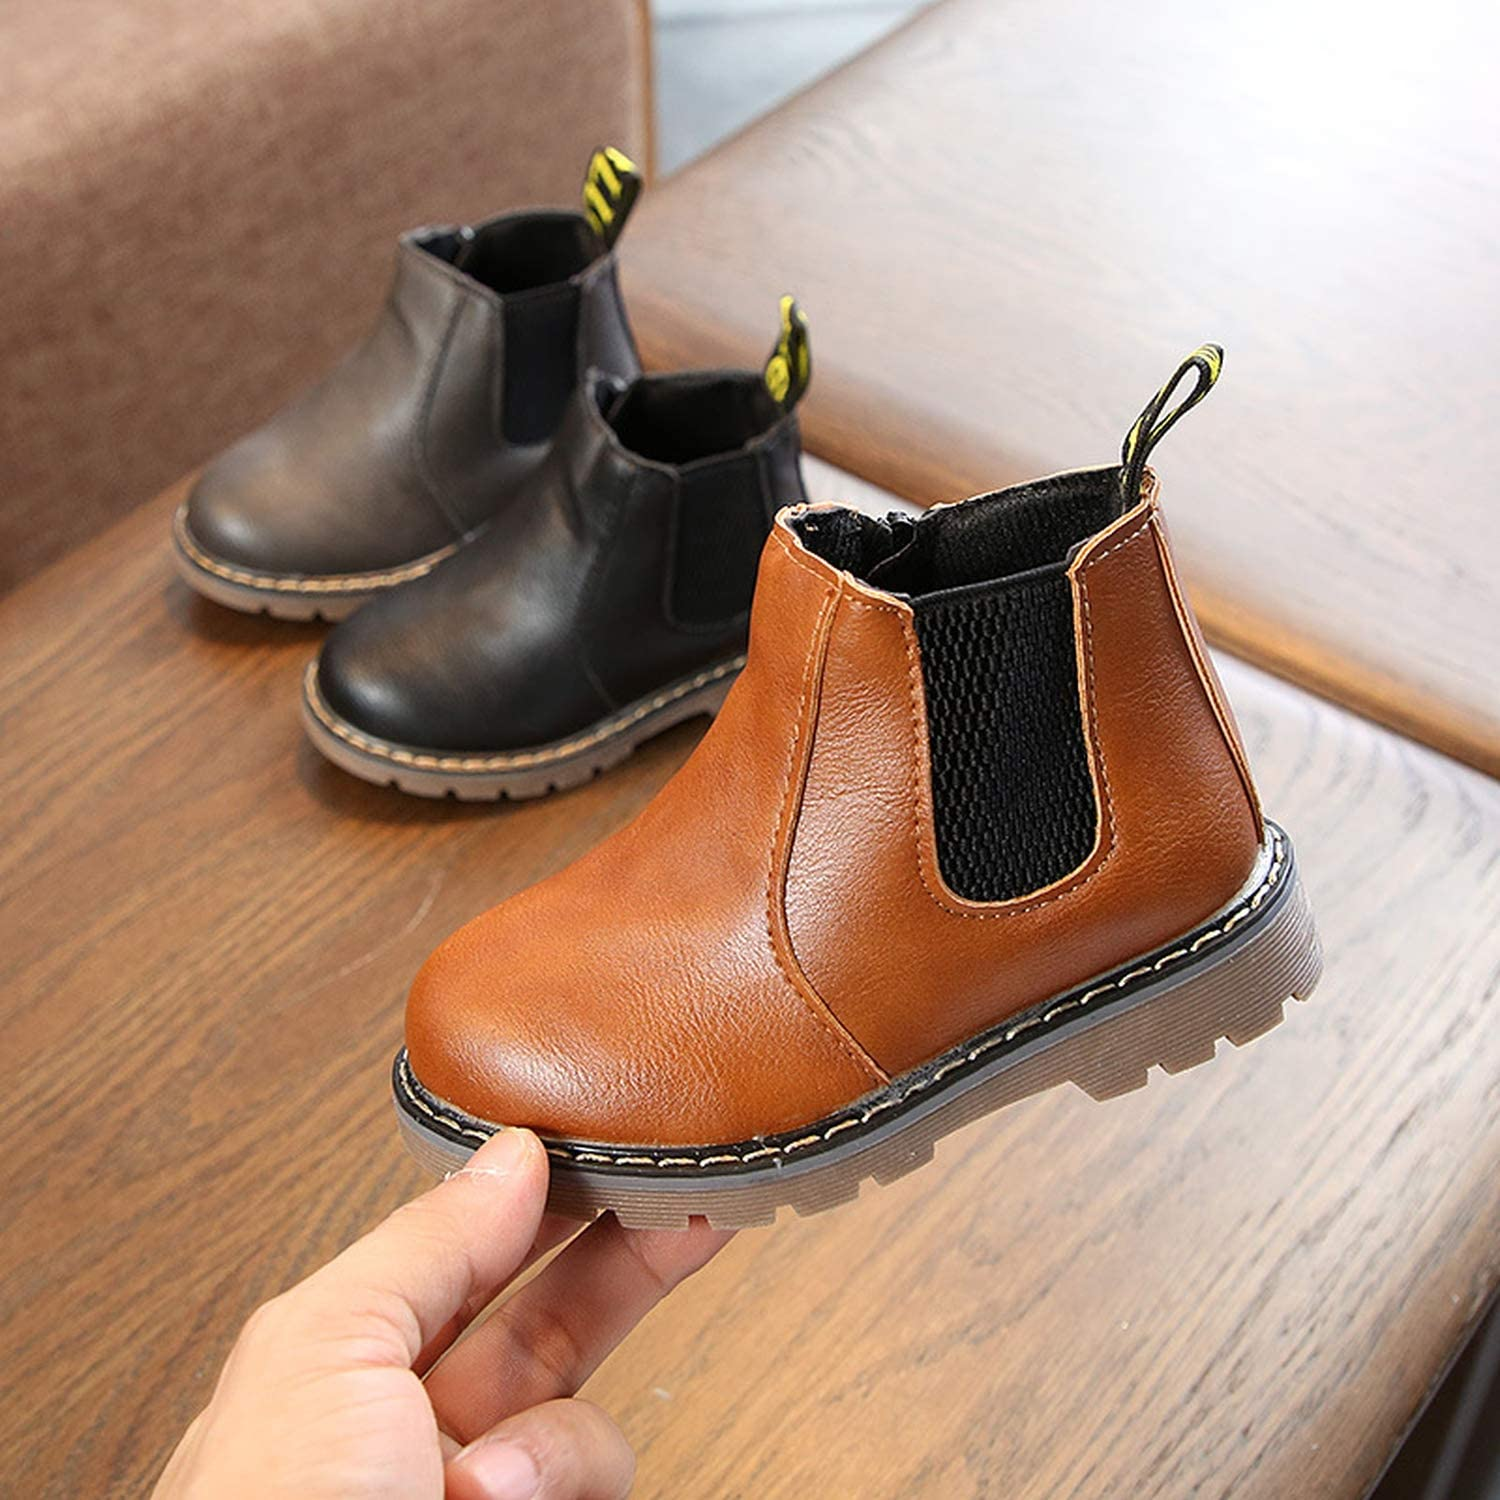 Childrens Martin Boots 2018 Autumn Winter Warm Plush Ankle Boots Kids Girls Casual Shoes Boys Baby Leather Boots